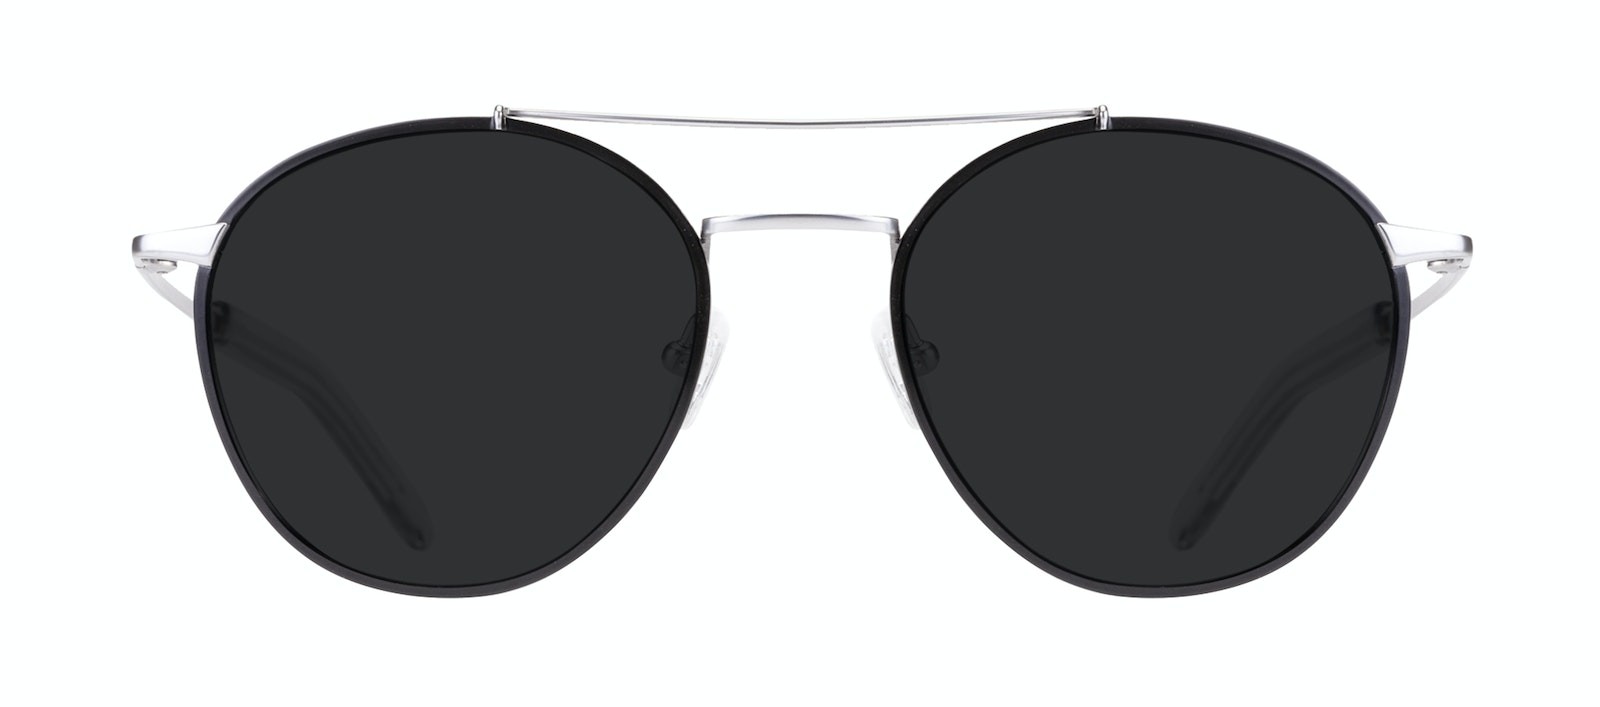 473de79e8b38f Gravity. Previous. Affordable Fashion Glasses Aviator Sunglasses Men Gravity  Black Silver Front